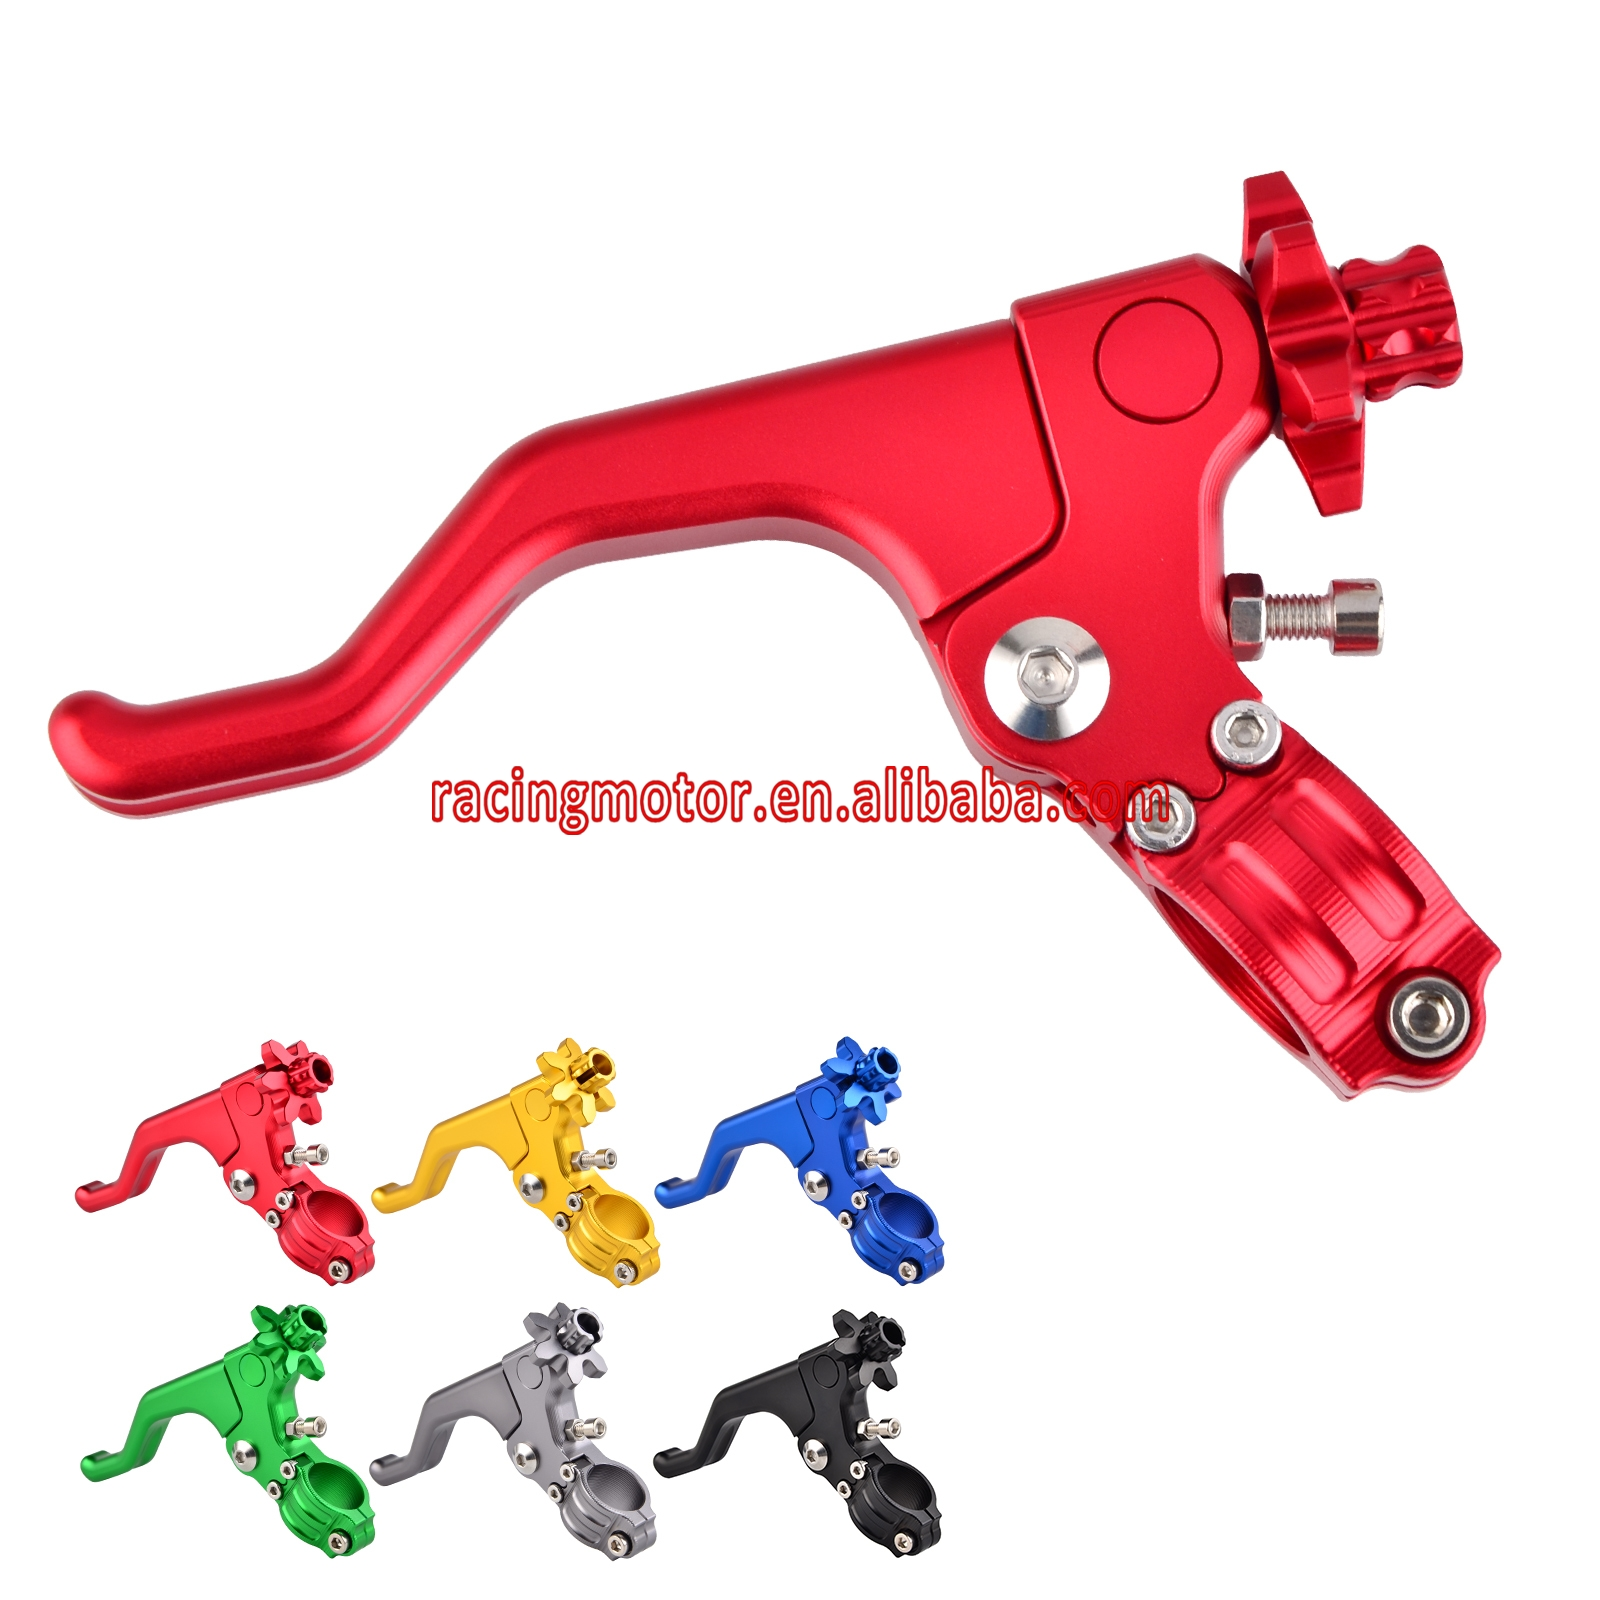 22MM 7/8 CNC Short Stunt Clutch Lever Assembly For CB500X CB500F CB500 F/X CB400 Super Four CBR600RR CBR600 RR motocross mx dirt bike 22mm 7 8 handlebar cnc short stunt clutch lever perch assembly 6 color options